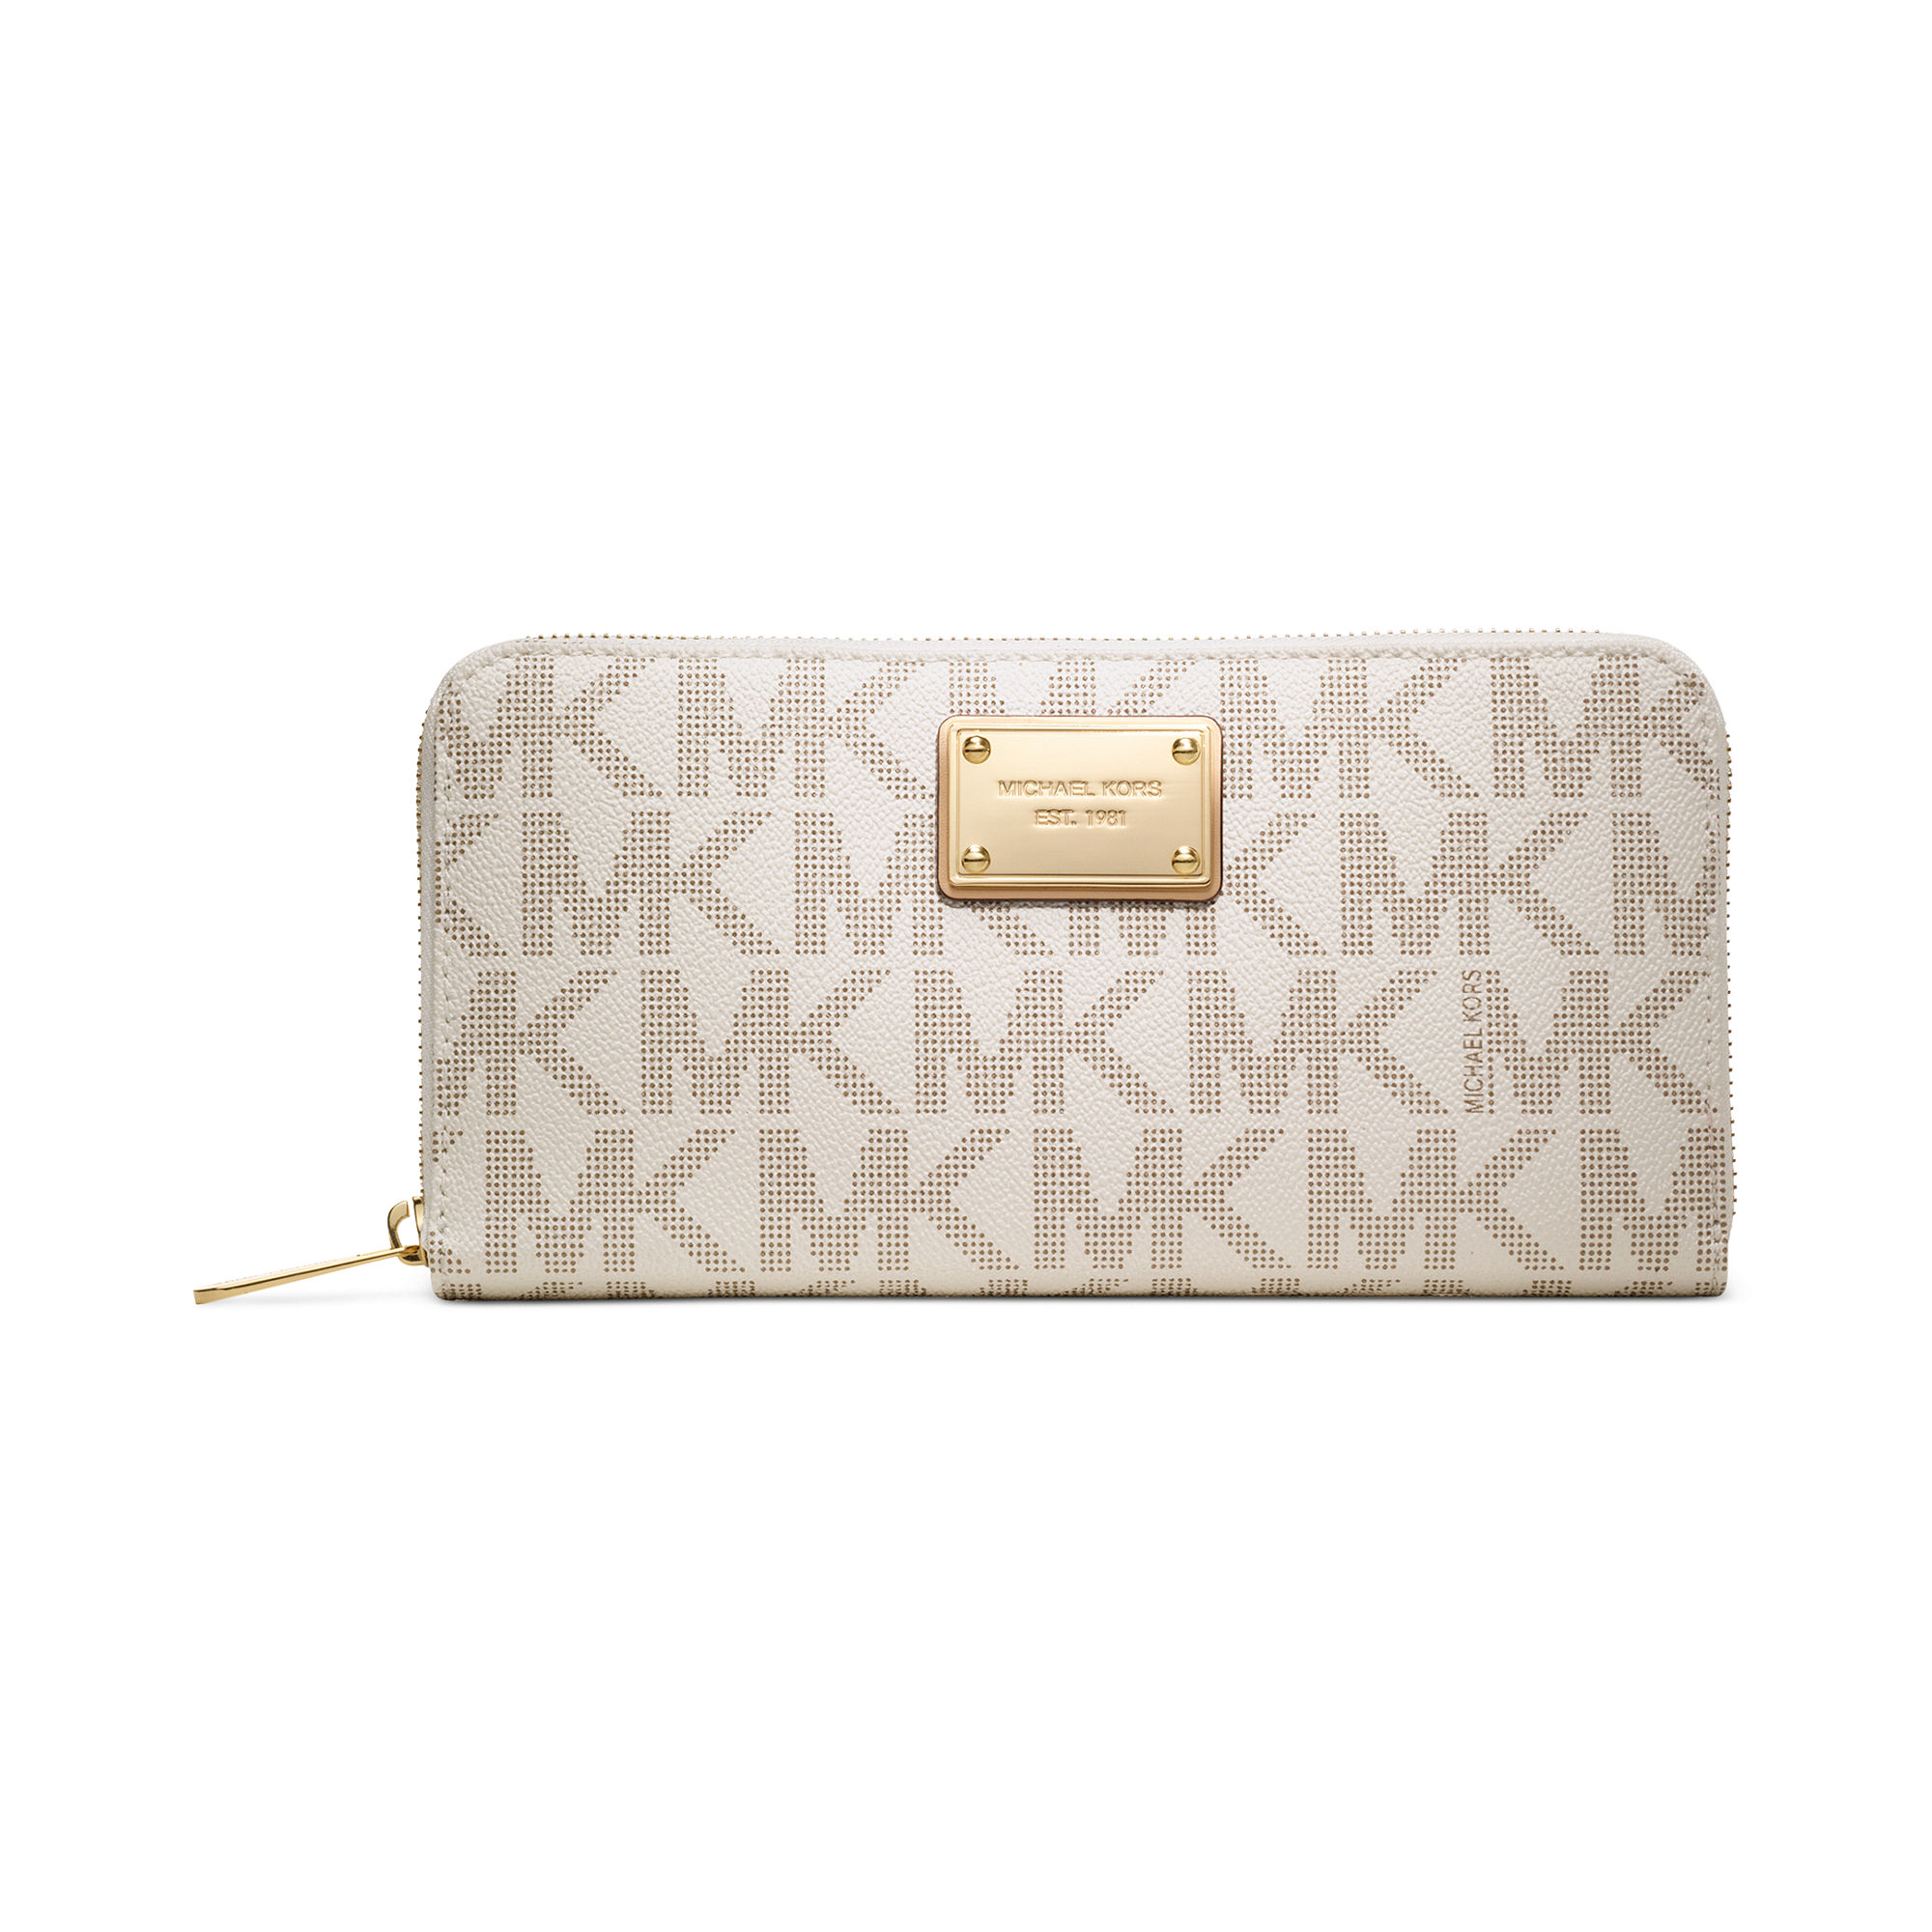 From lifelong classics, to seasonal sensations - harness the power of accessories with the latest Michael Michael Kors collection. Equal parts cool and classy, every piece is a sure-fire winner. This black leather ruched clutch bag from Michael Michael Kors features a top zip closure, a shoulder strap, a ruched design and a gold-tone logo plaque.